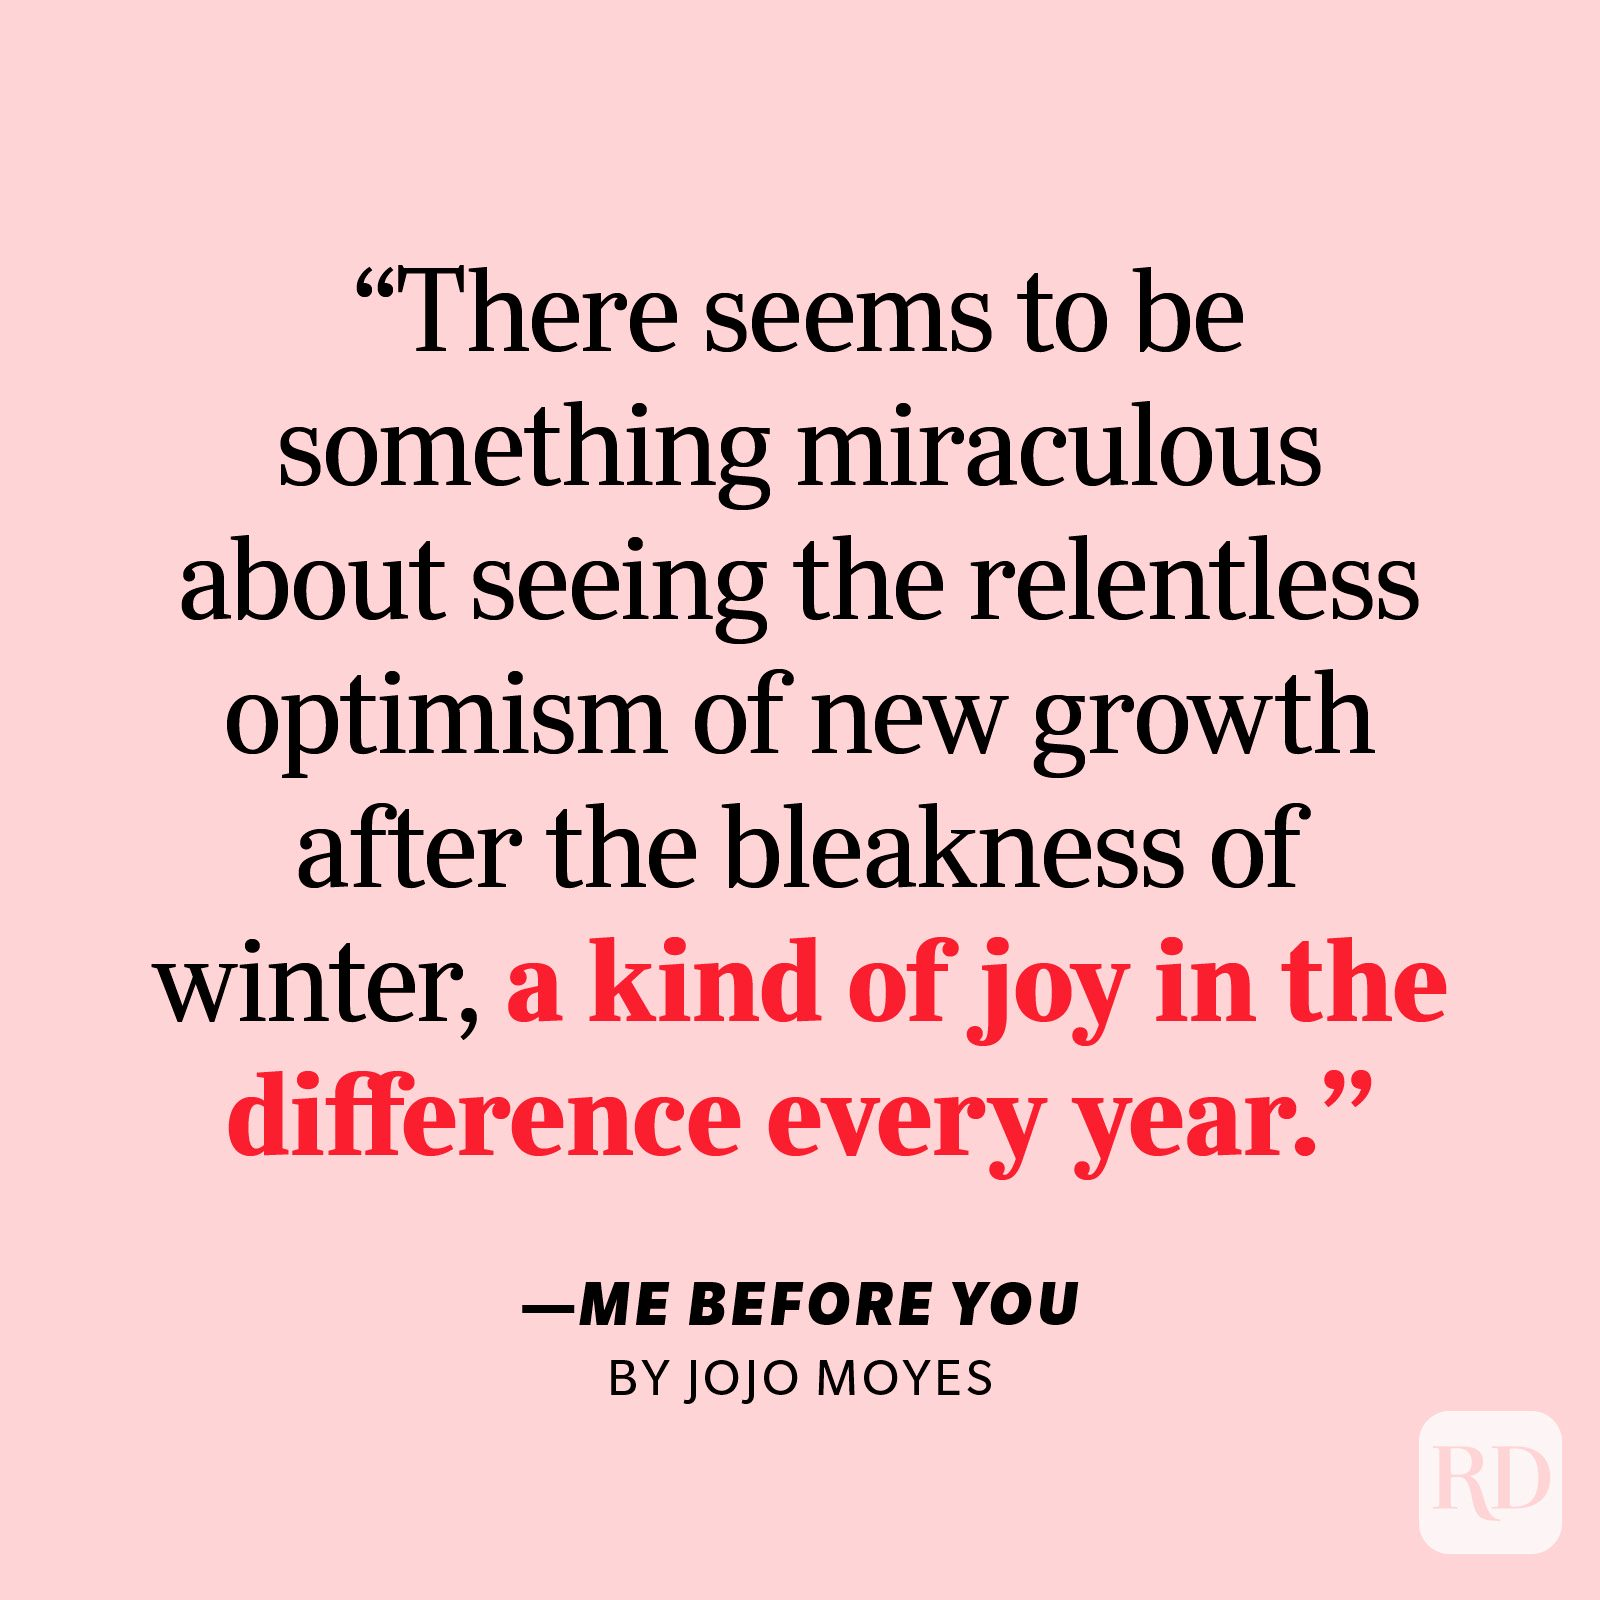 """Me Before You by Jojo Moyes     """"They say you really appreciate a garden only once you reach a certain age … There seems to be something miraculous about seeing the relentless optimism of new growth after the bleakness of winter, a kind of joy in the difference every year."""""""